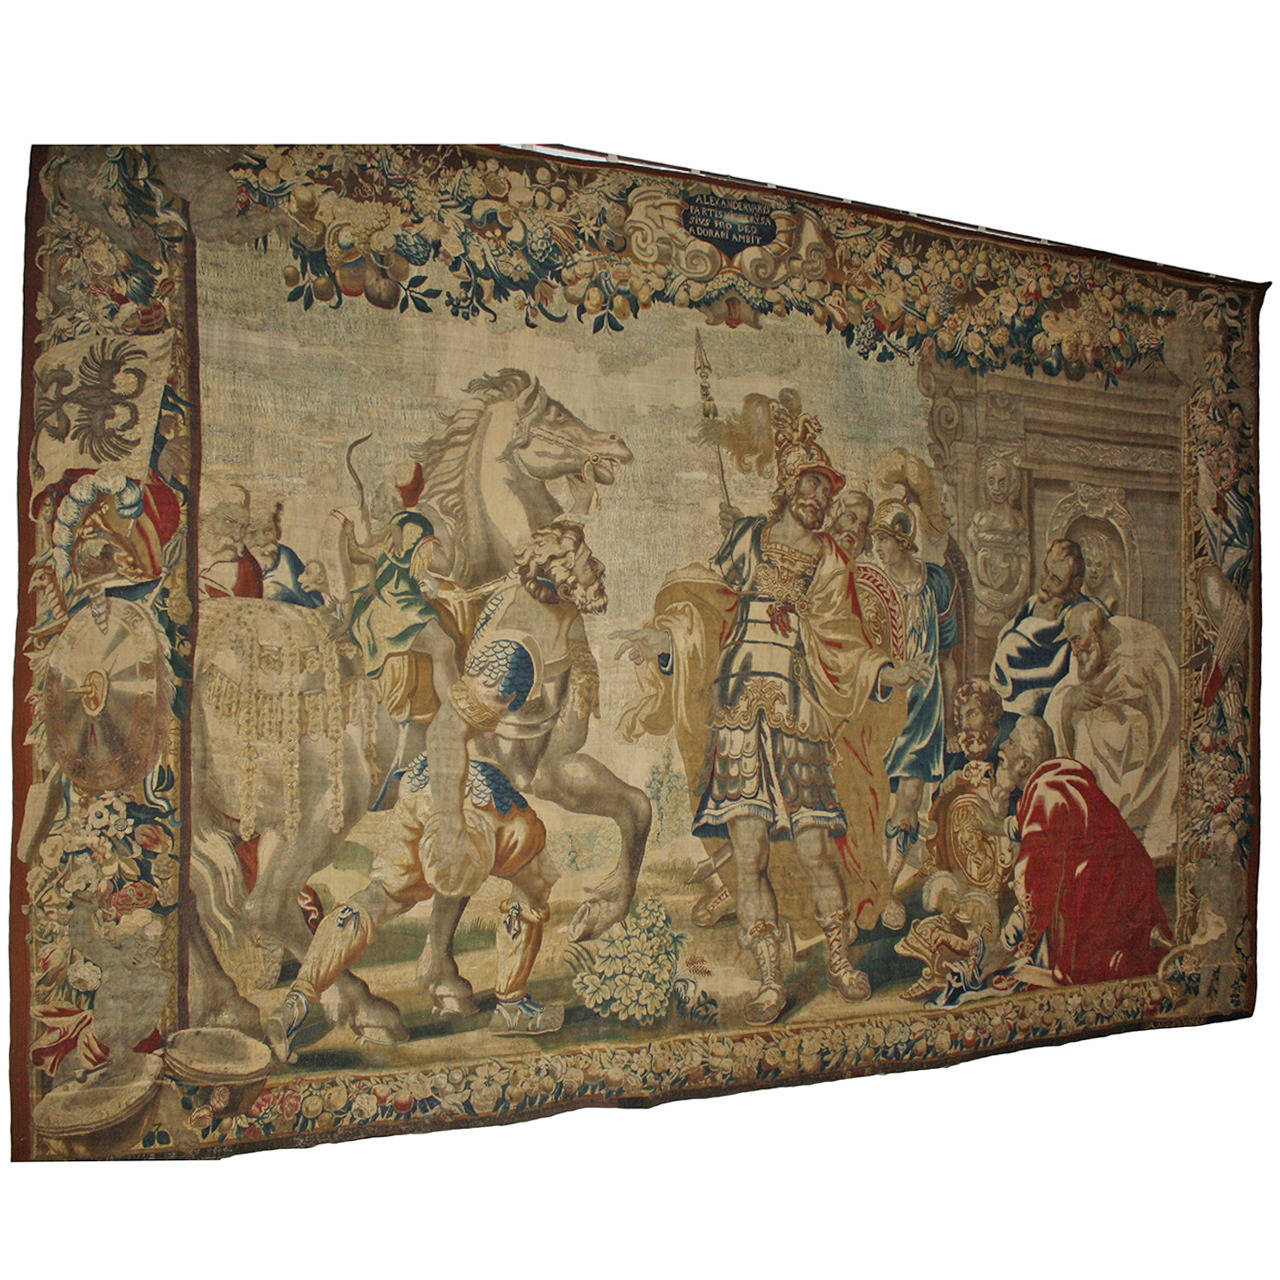 Brussels Historical Masterpiece Of A Tapestry By Jan Leyniers For Sale